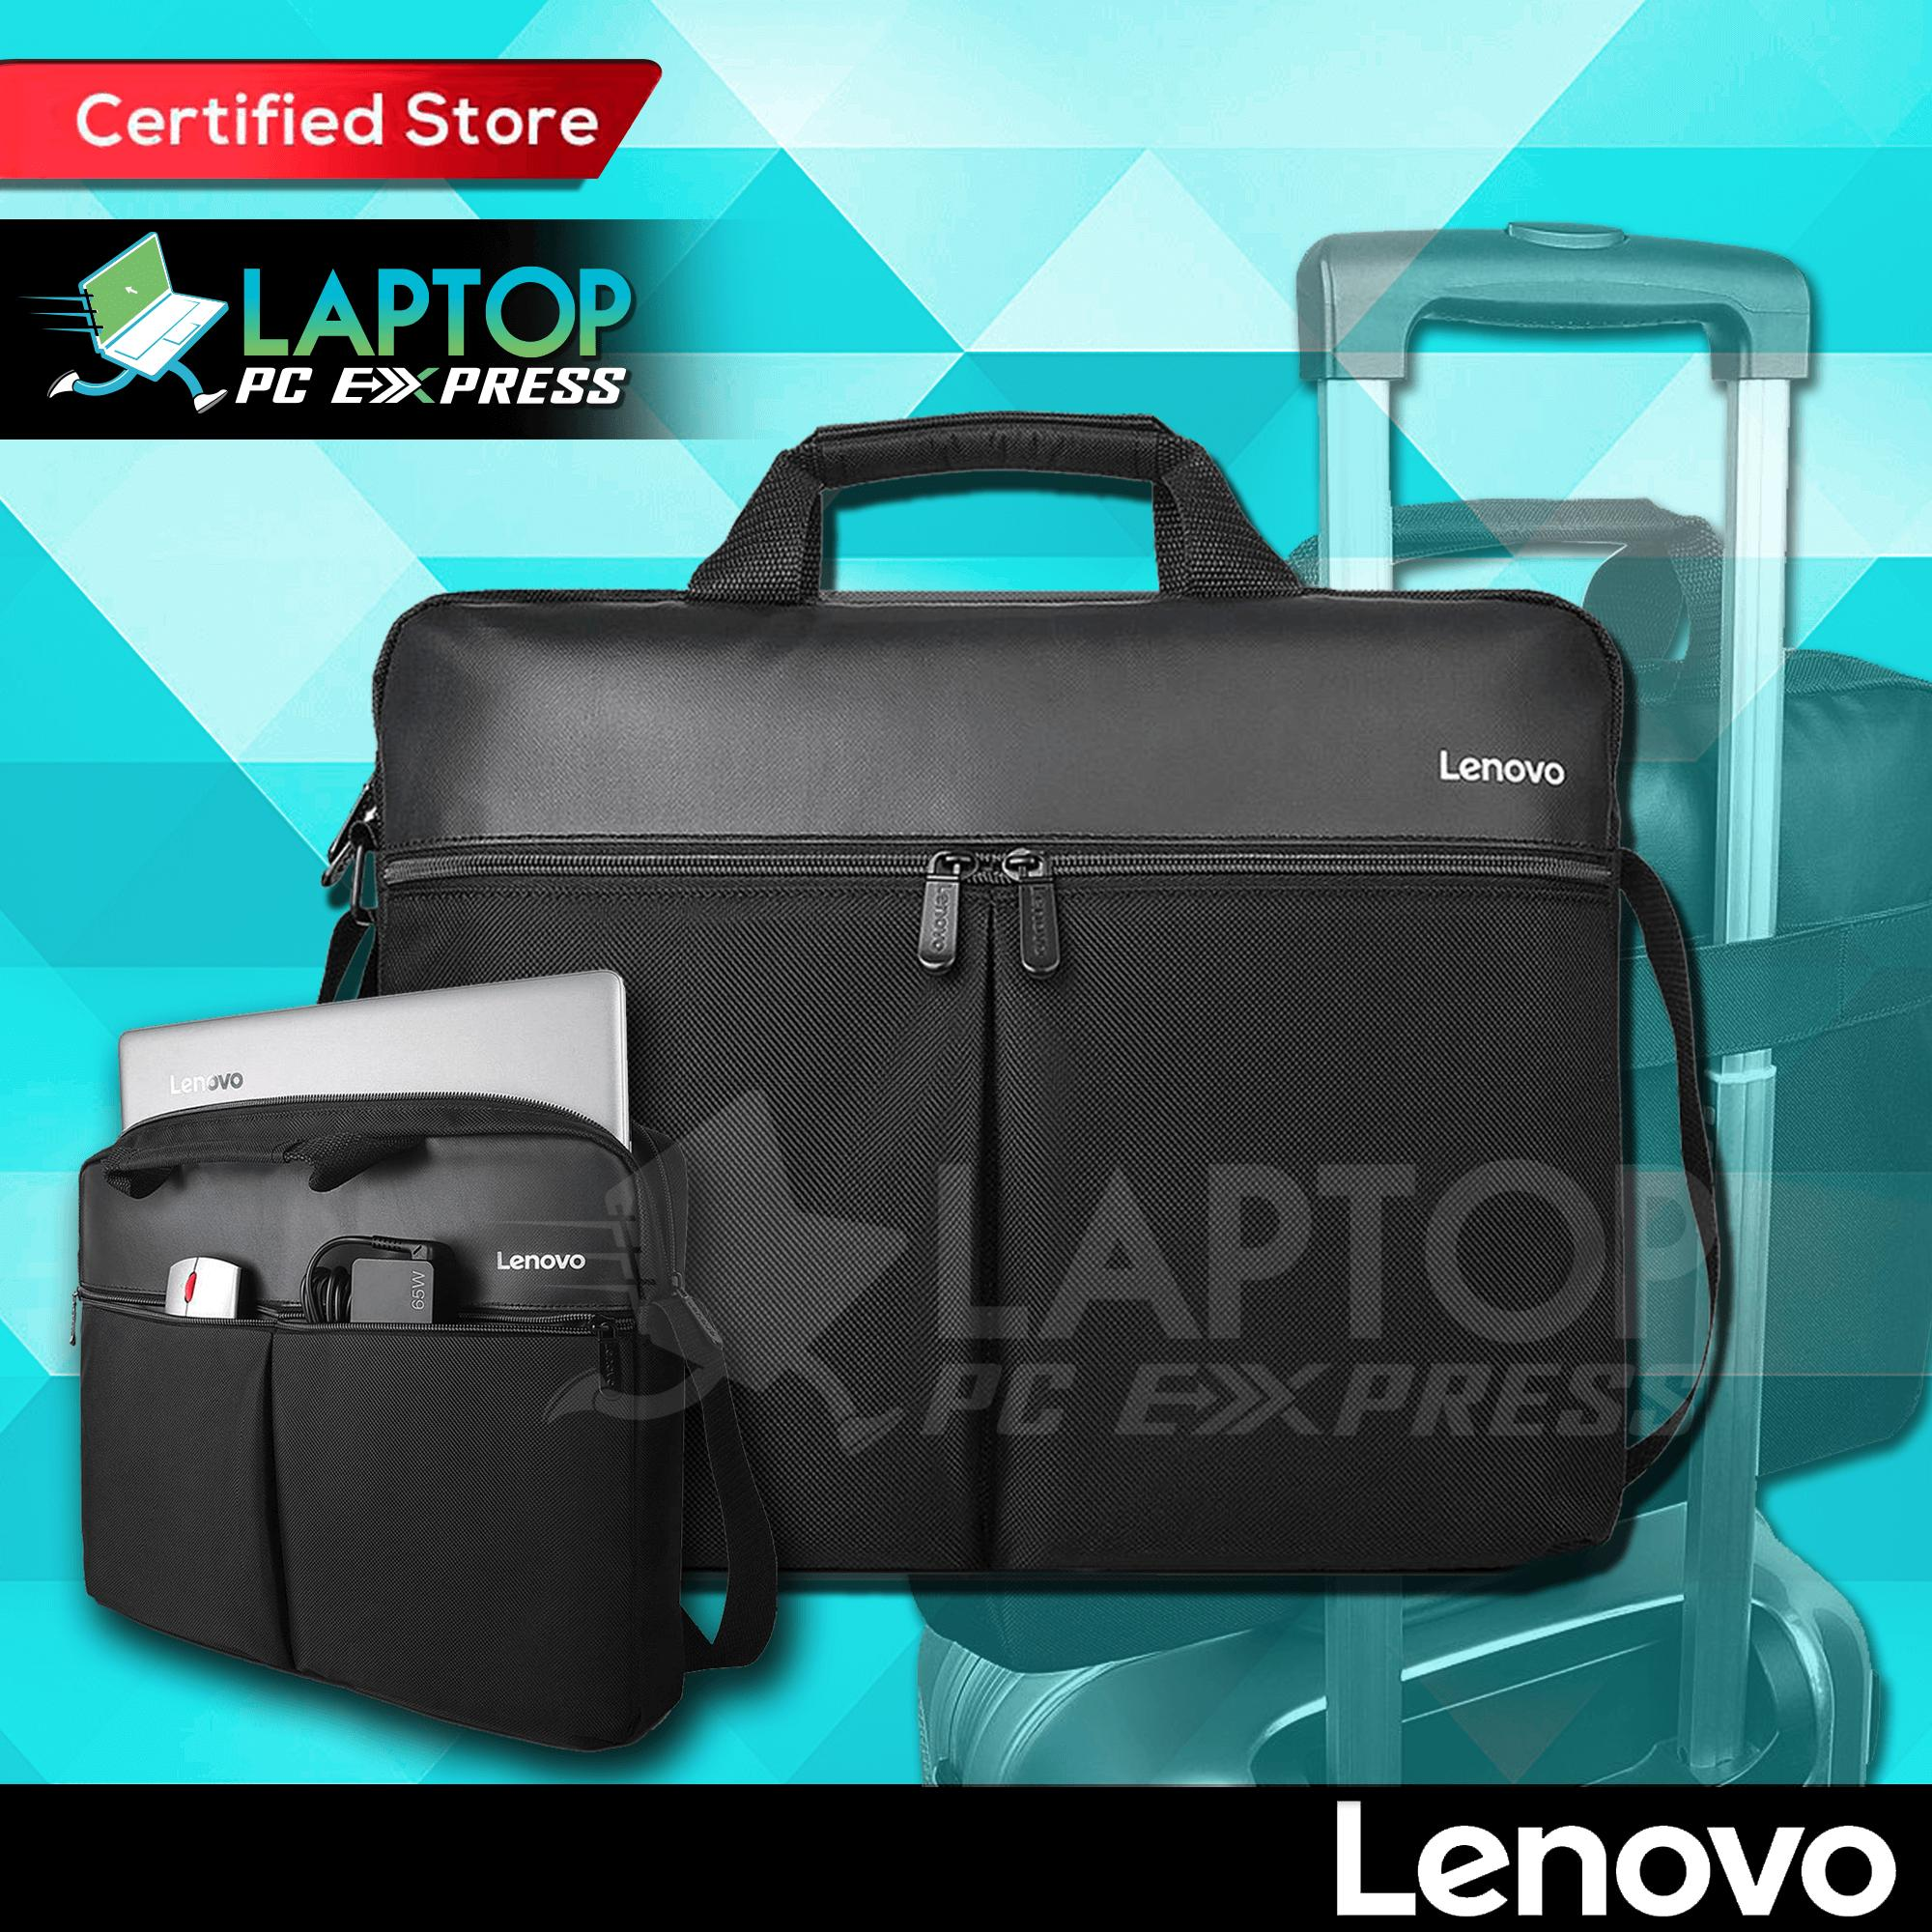 Latest Lenovo Products up to 60% off | Lazada Philippines